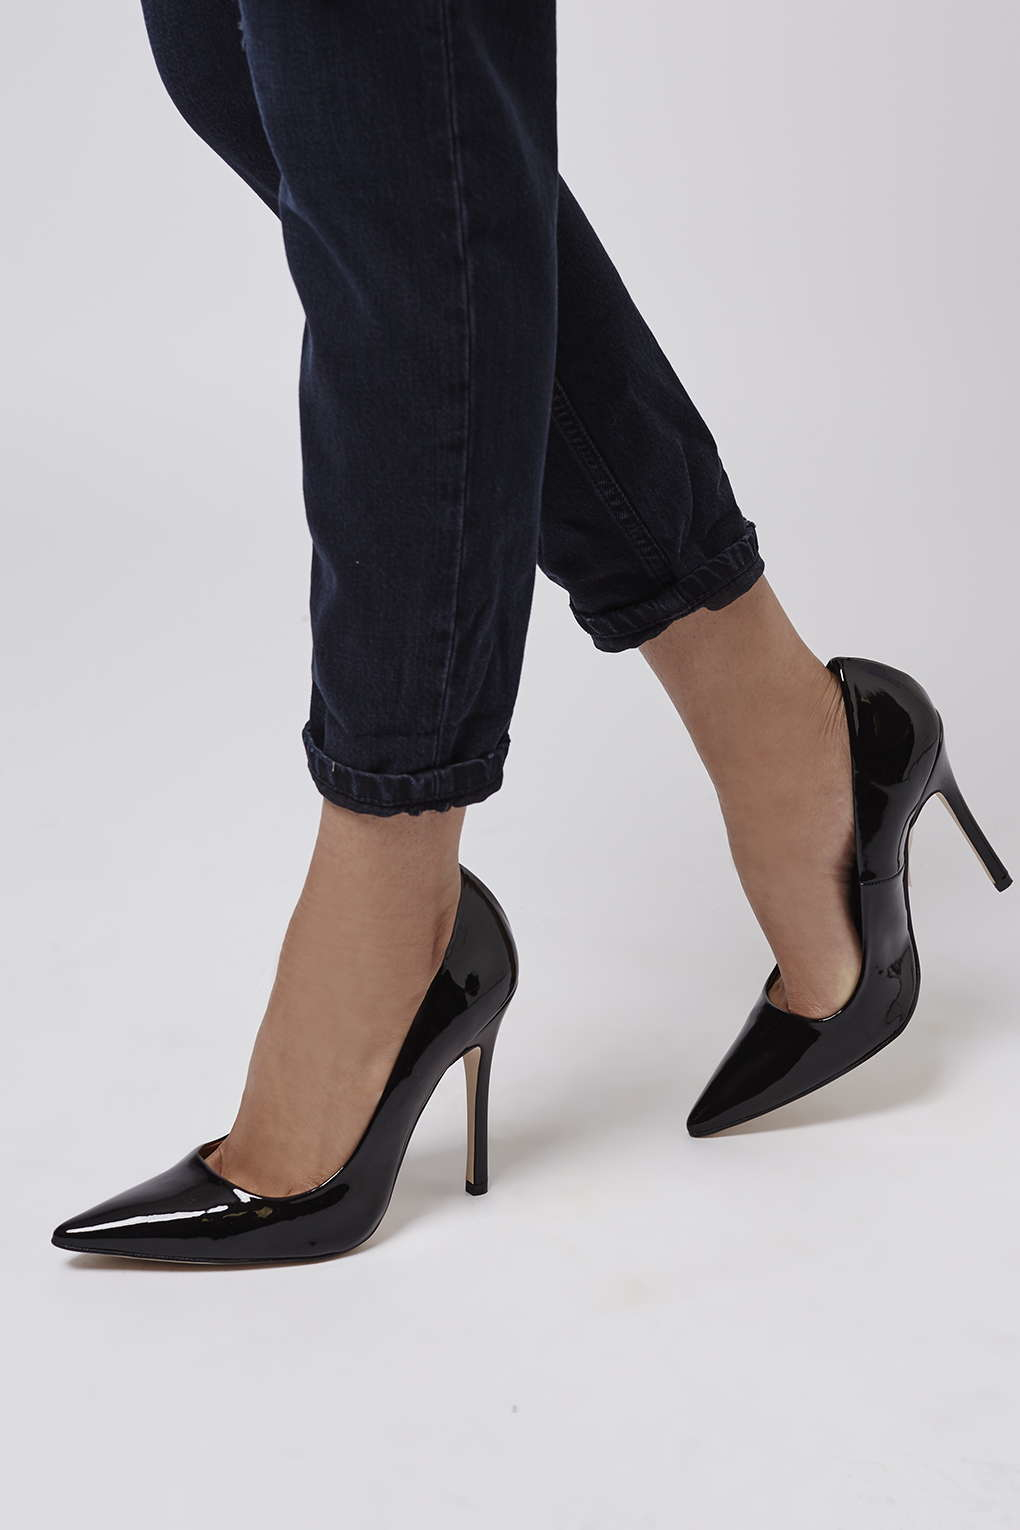 c8c78055ec TOPSHOP Gallop Patent Court Shoes in Black - Lyst